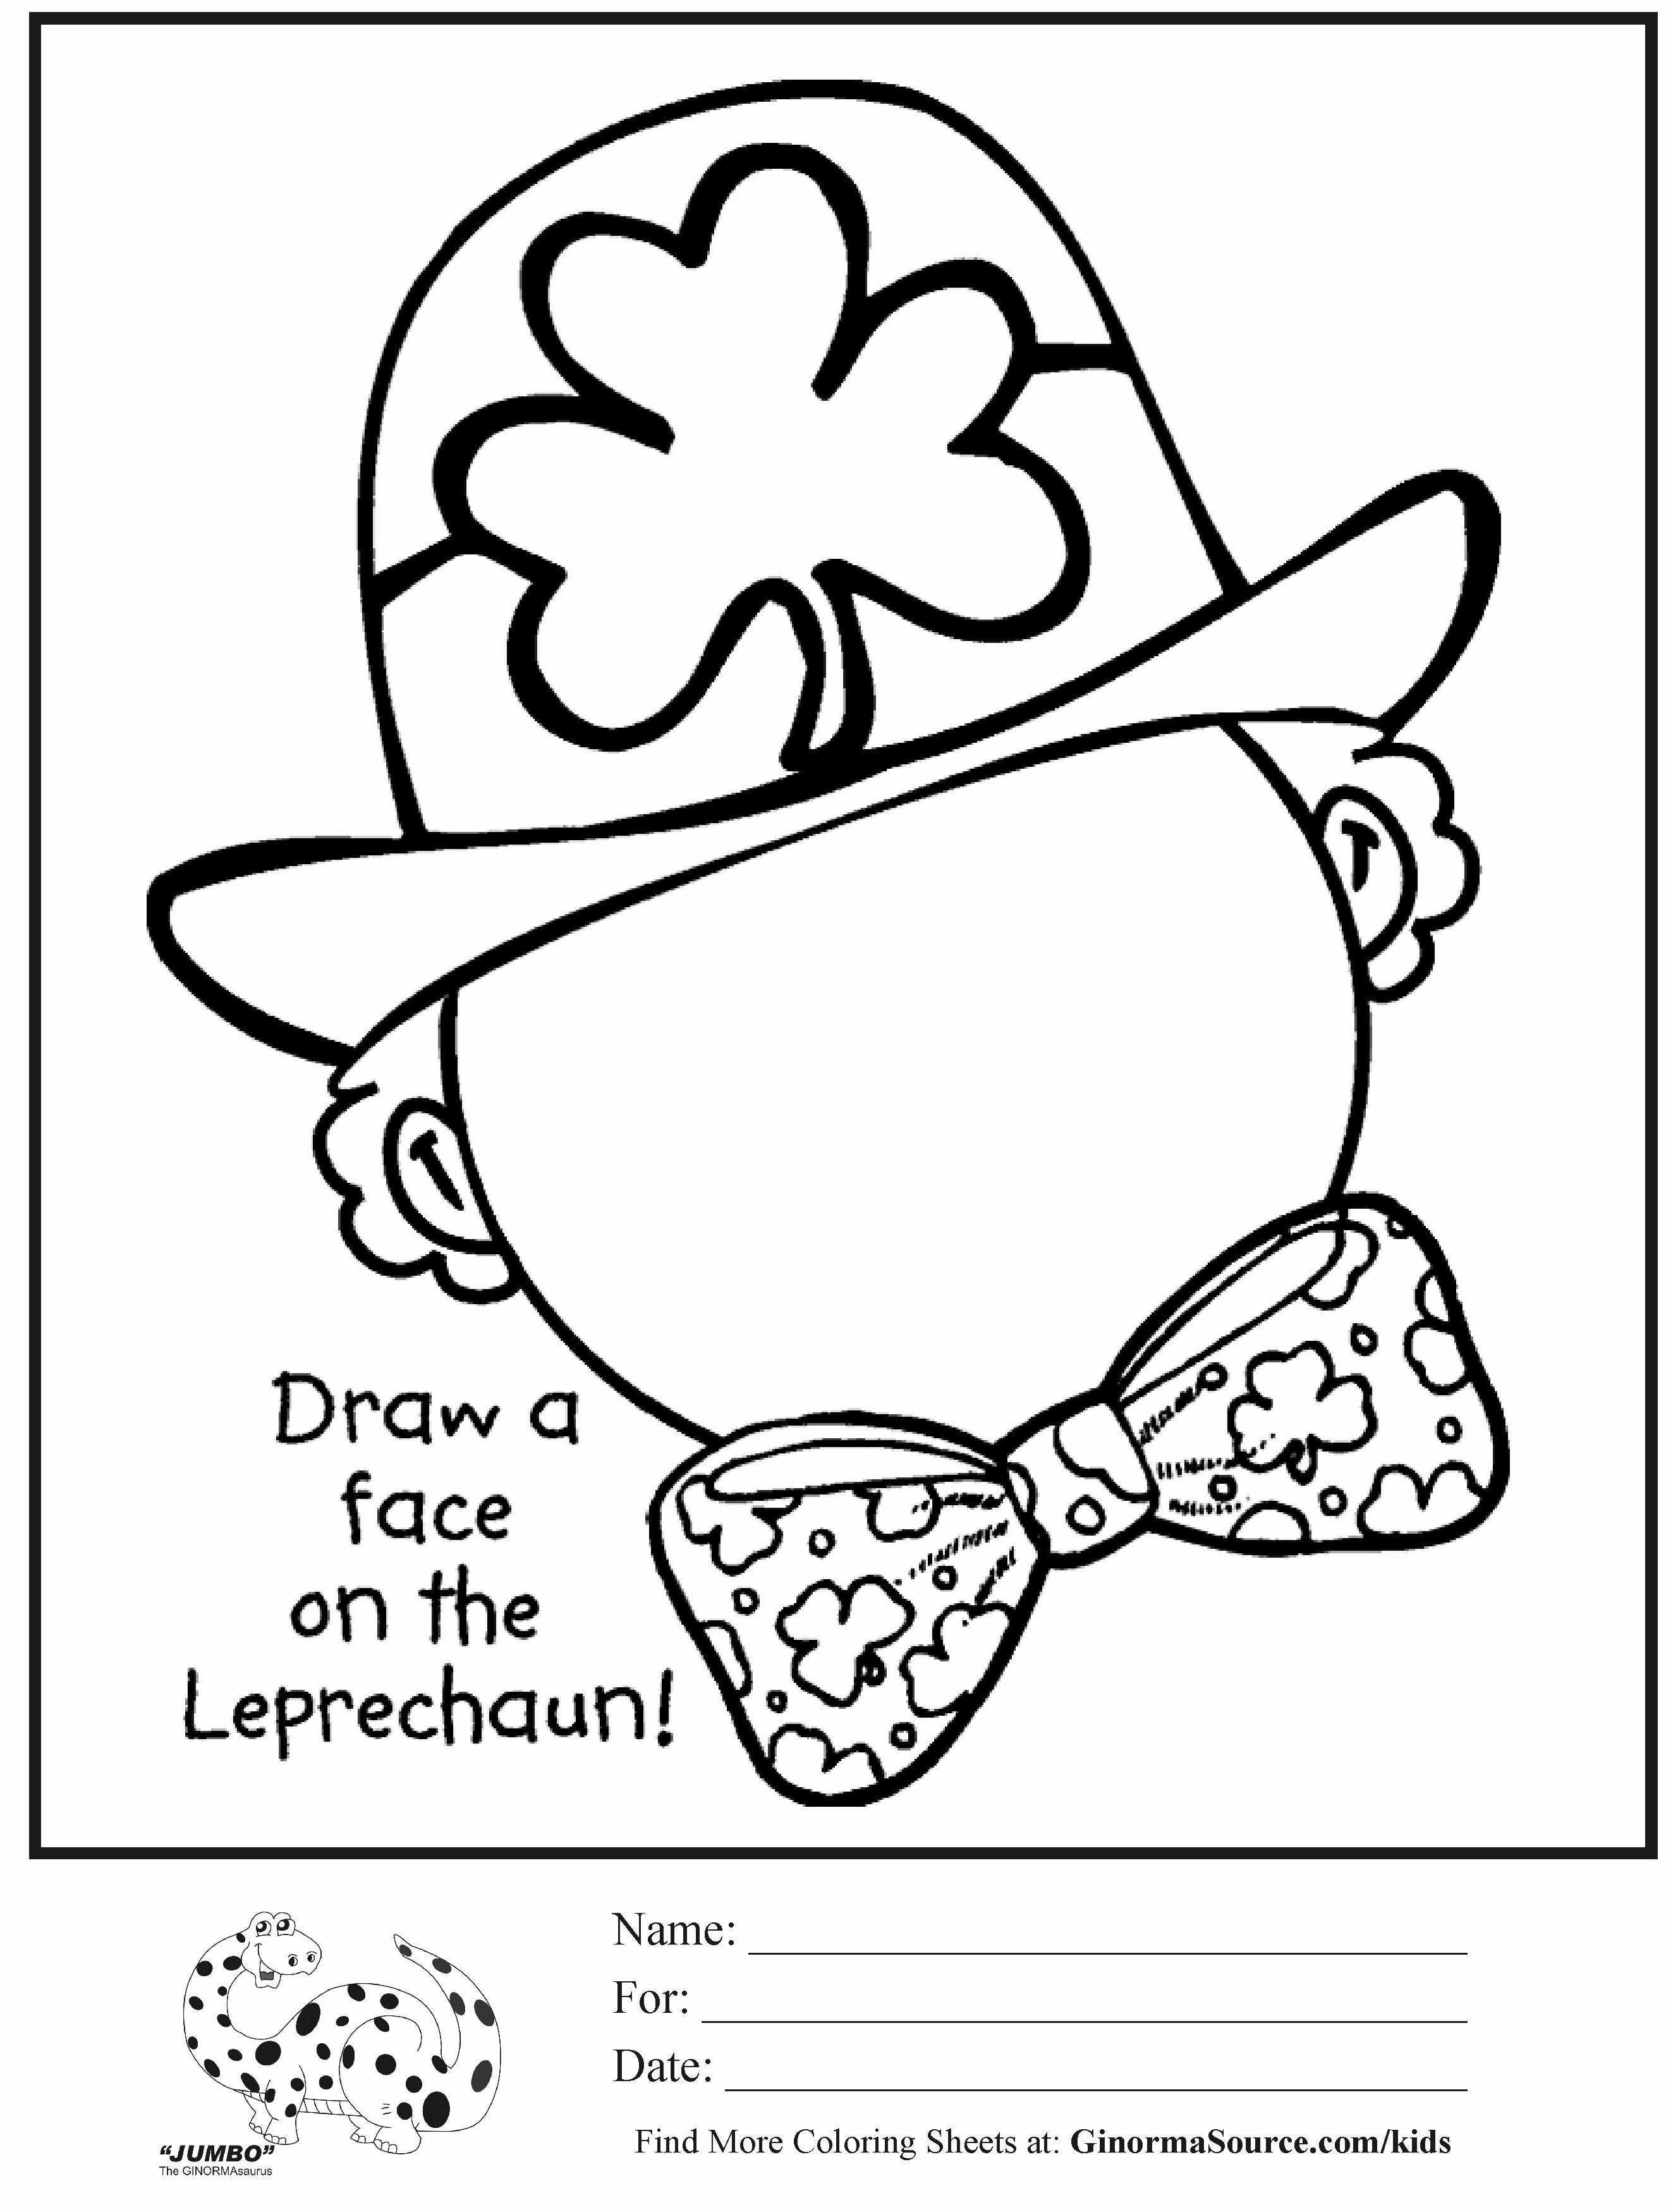 St Patrick 039 S Day Coloring Pictures Luxury Collection Free Coloring Pages St Patrick039 St Patricks Coloring Sheets Printable Coloring Pages Coloring Pages [ 3499 x 2636 Pixel ]